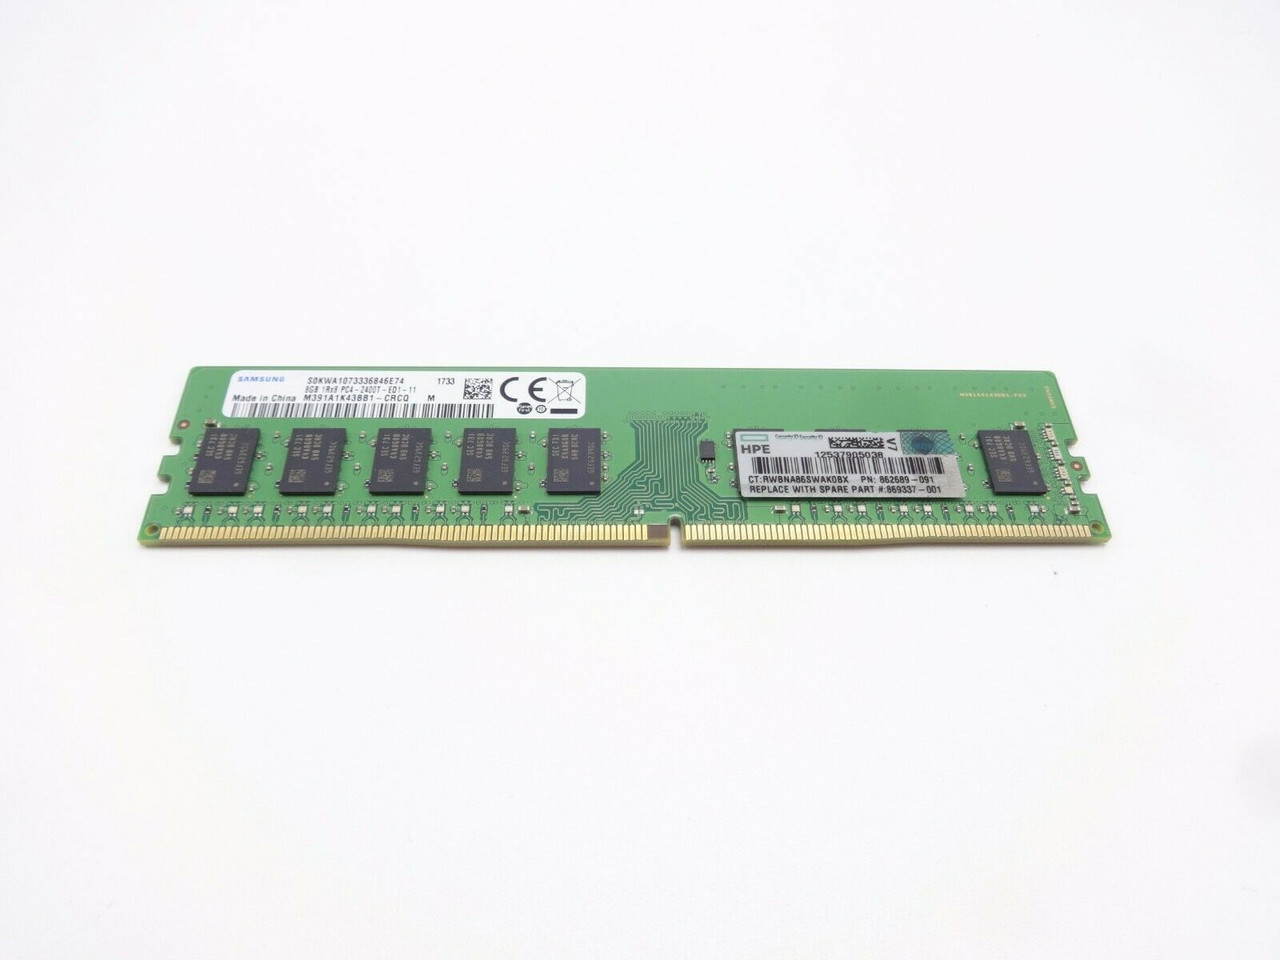 HP HPe 862689-091 8GB 1Rx8 PC4 19200 DDR4 2400T Server Memory